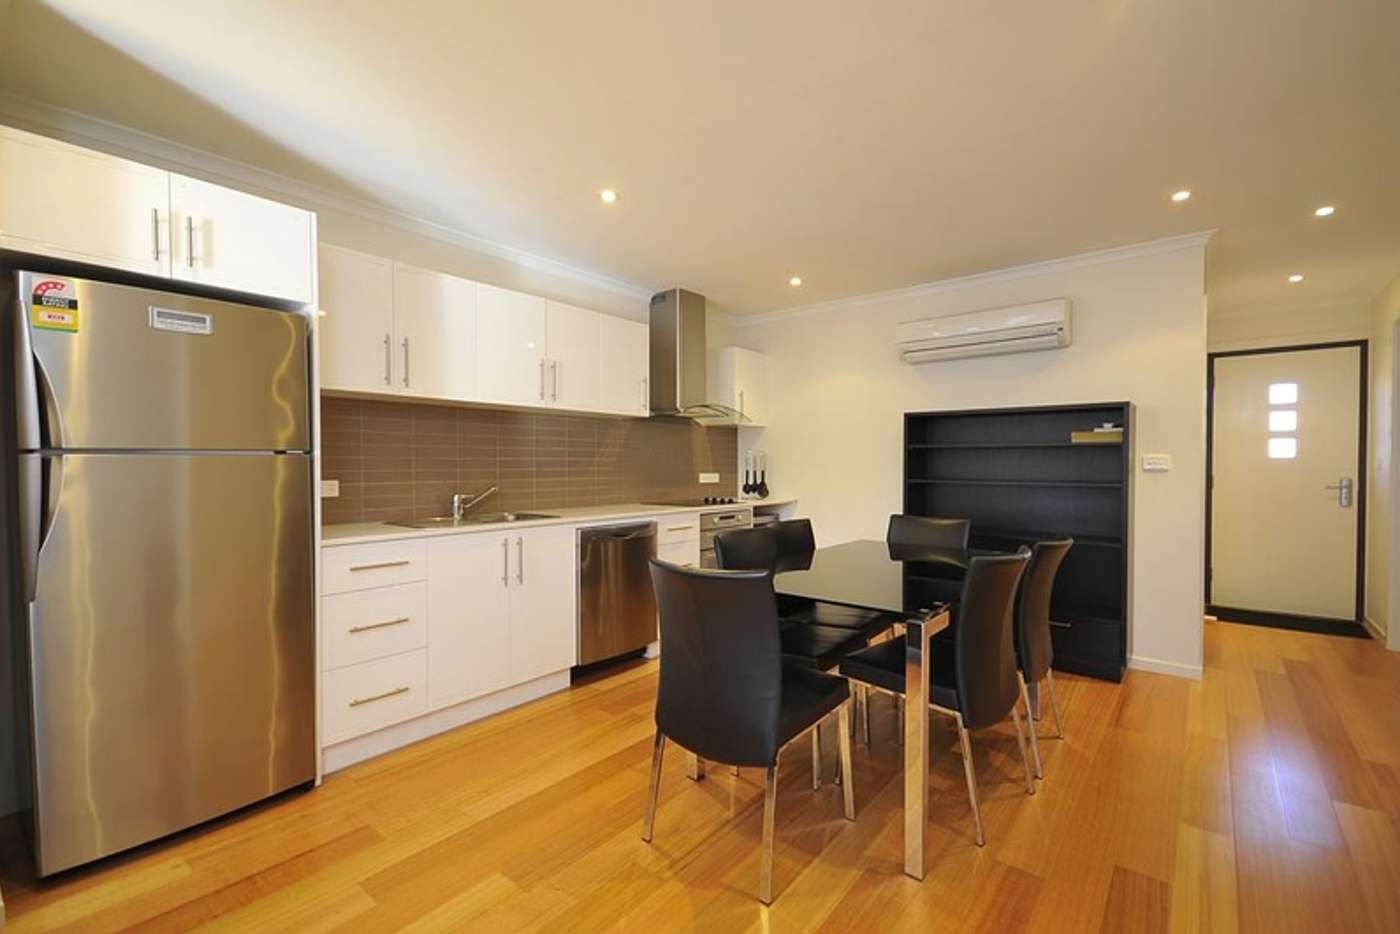 Main view of Homely house listing, 1/4 Bryan Street, Invermay TAS 7248